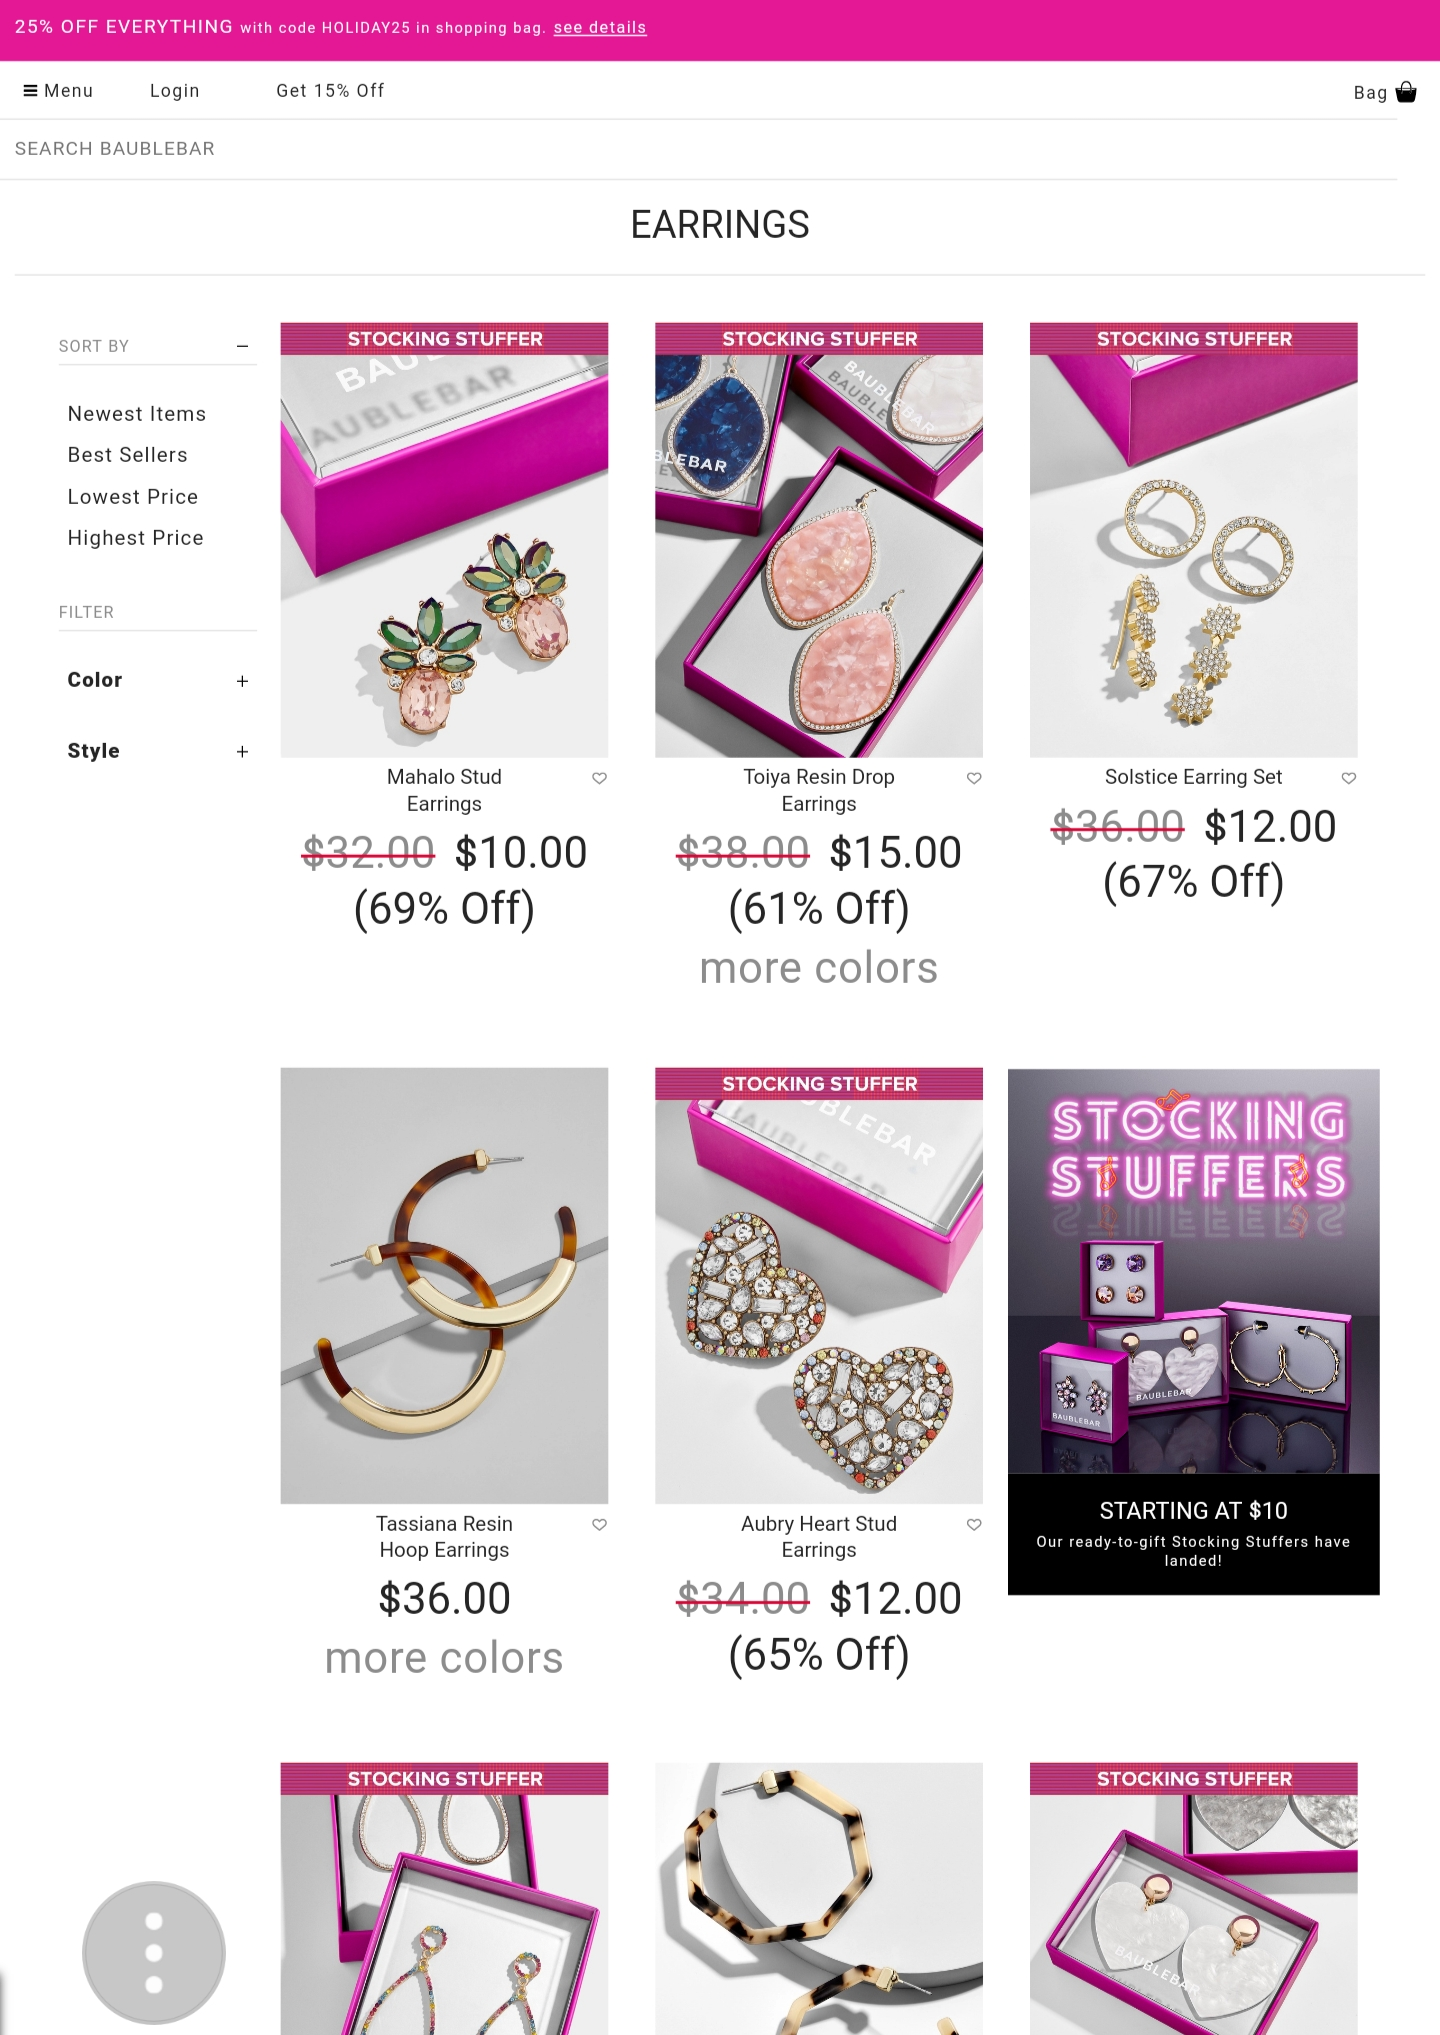 Top place to buy cheap jewelry and affordable jewellery from. Low-priced jewellery for the simple jewelry lovers and bold jewelry. Budget-friendly jewellery for all. Your affordable jewelry gift guide. Gift guide for her. Stocking stuffers for her. Christmas gift guide